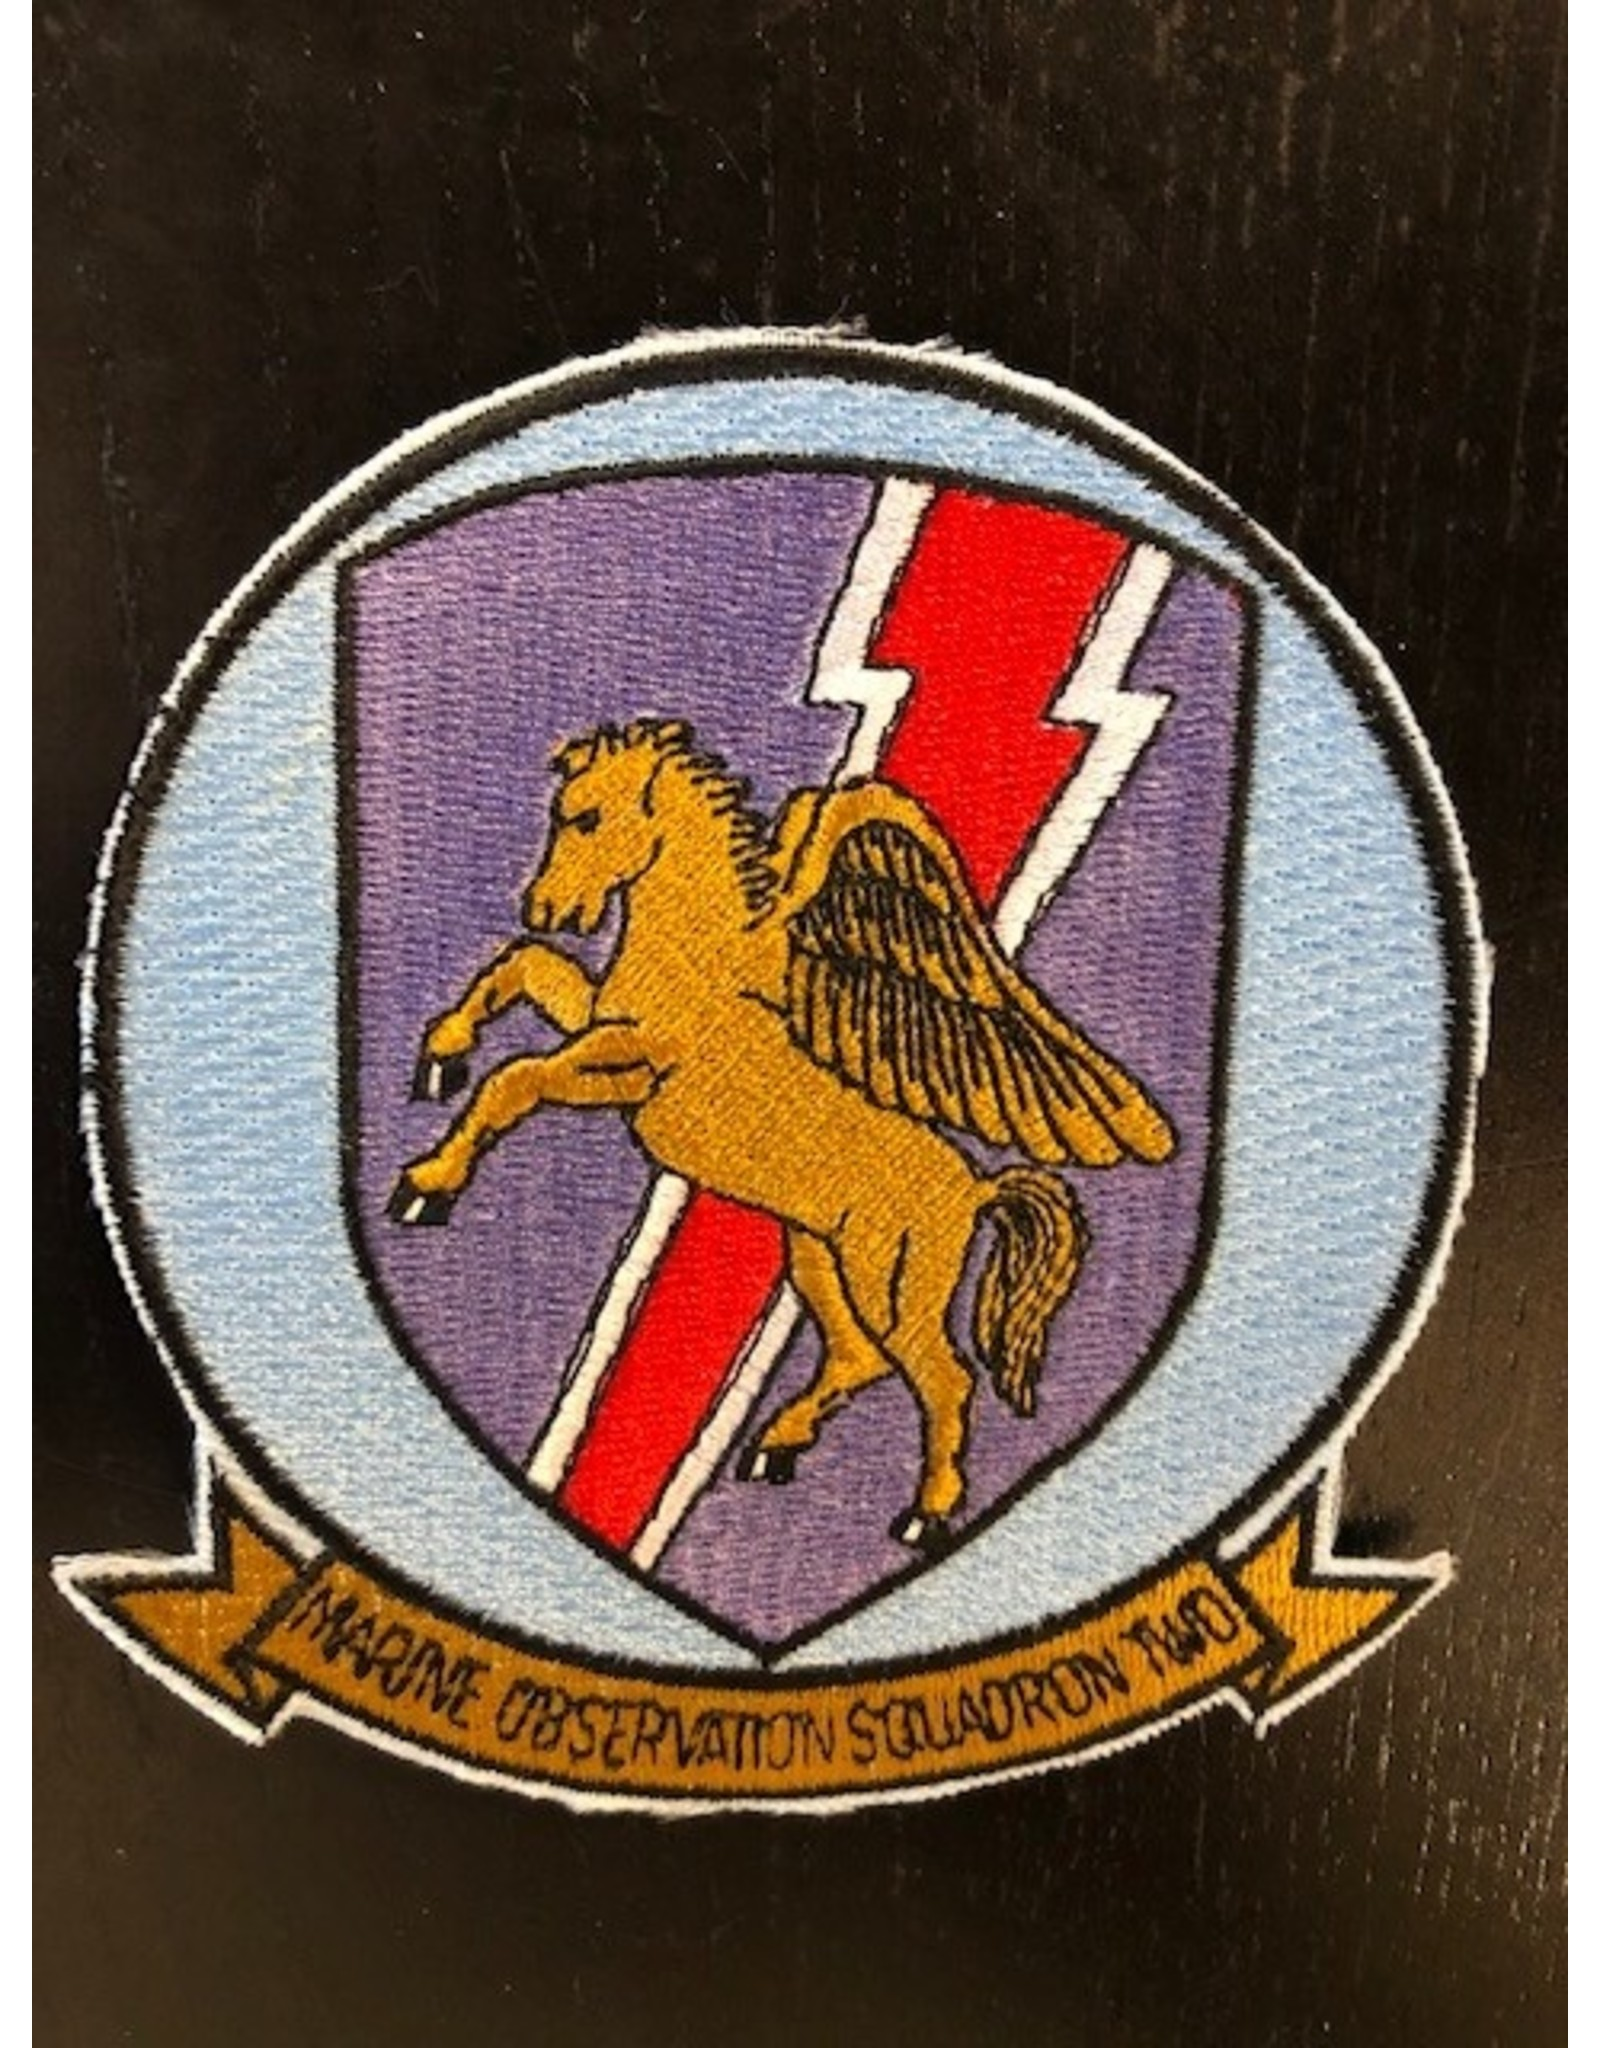 FWAM Marine Observation Squadron Two - Shield (33), patch